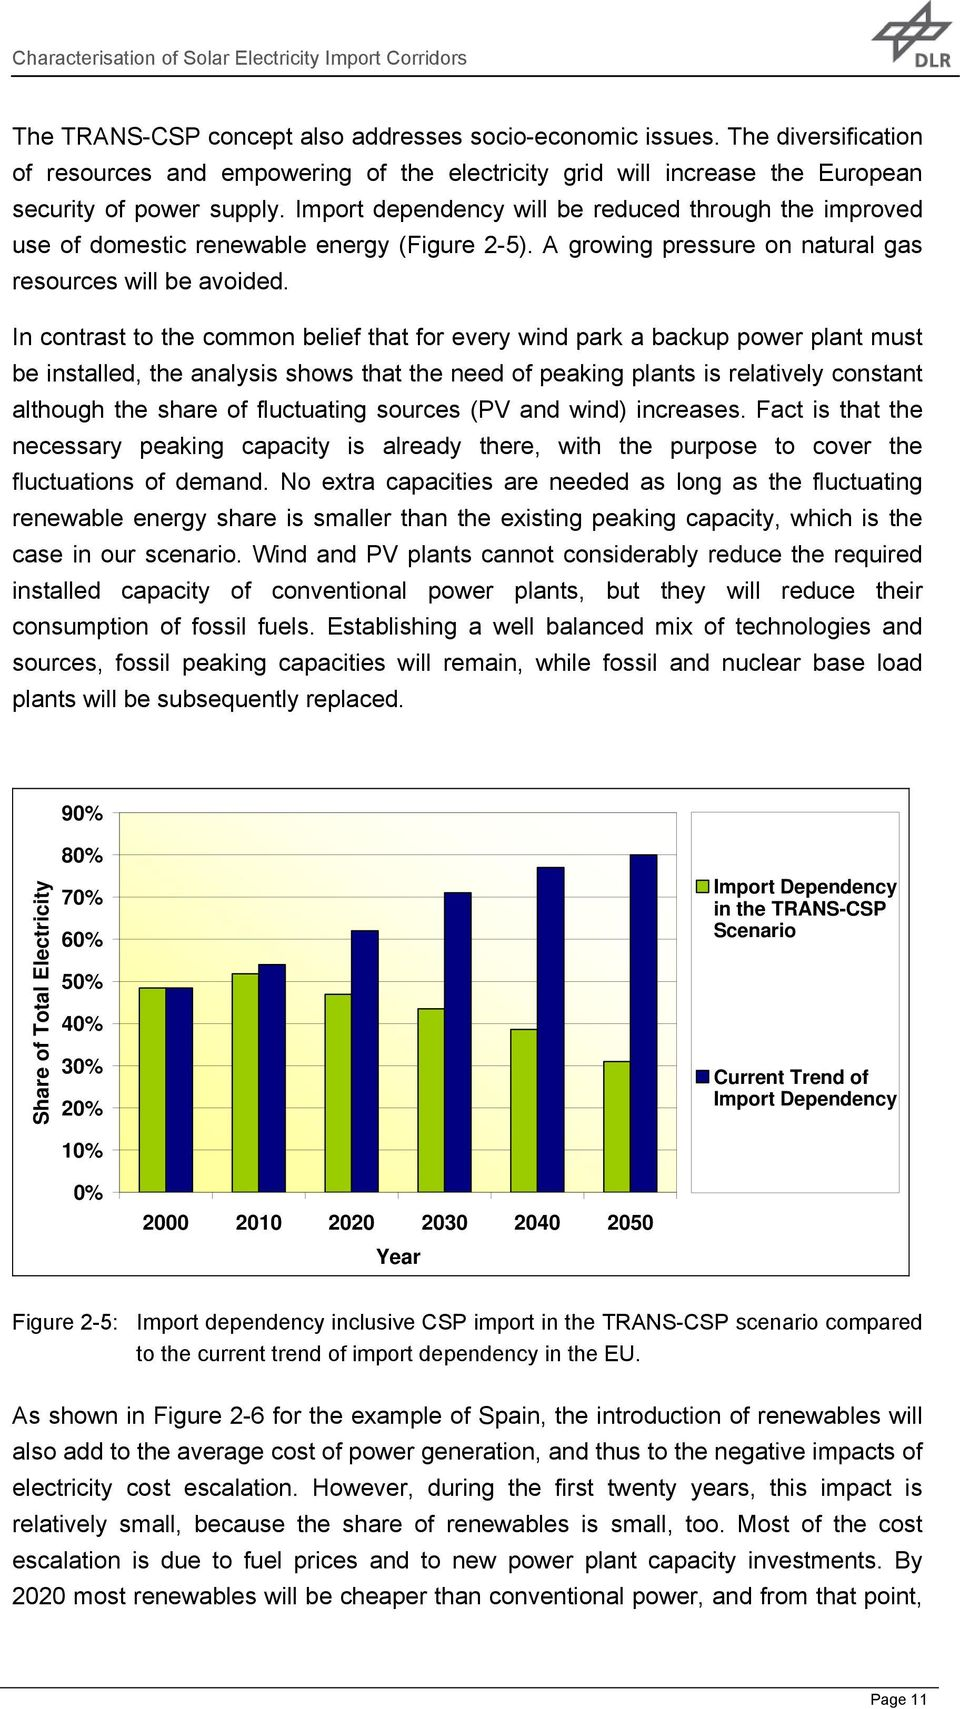 In contrast to the common belief that for every wind park a backup power plant must be installed, the analysis shows that the need of peaking plants is relatively constant although the share of